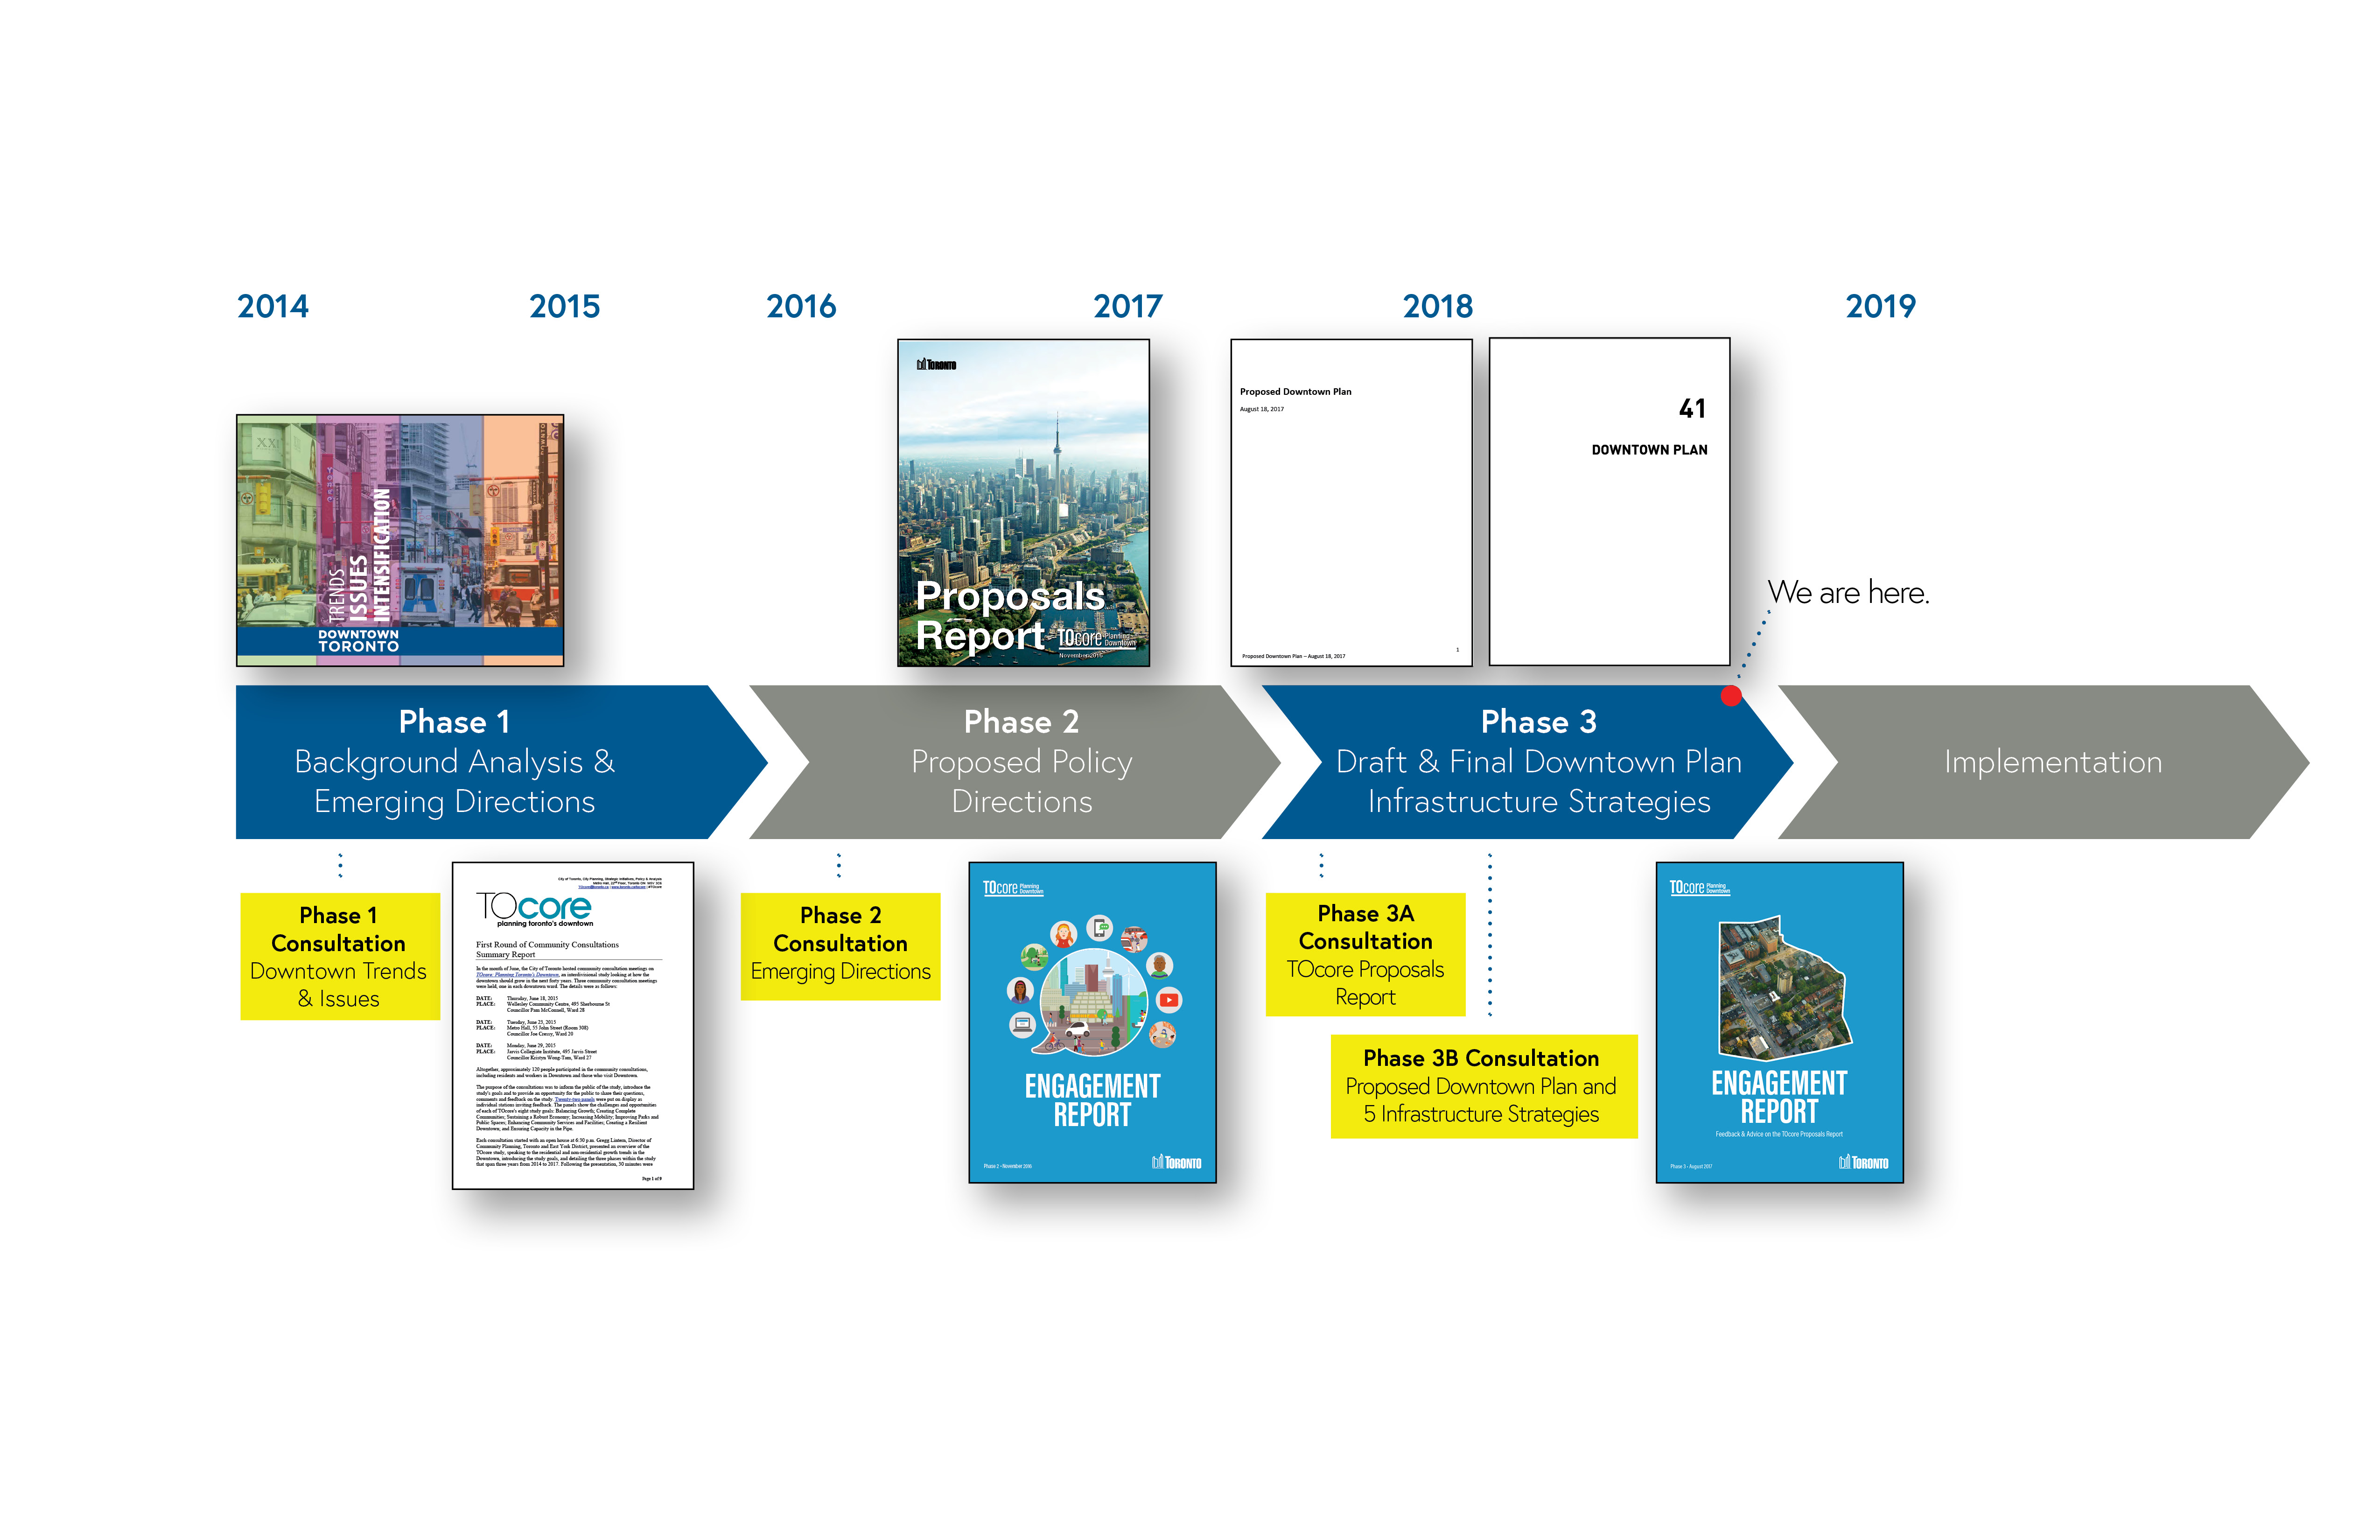 Phase 1: Background Analysis & Emerging Directions, 2014 – 2015. Phase 2: Proposed Policy Directions, 2016-2017. Phase 3: Draft & Final Downtown Plan and Infrastructure Strategies, 2017 to Spring 2018. Phase 4: Implementation, 2019.